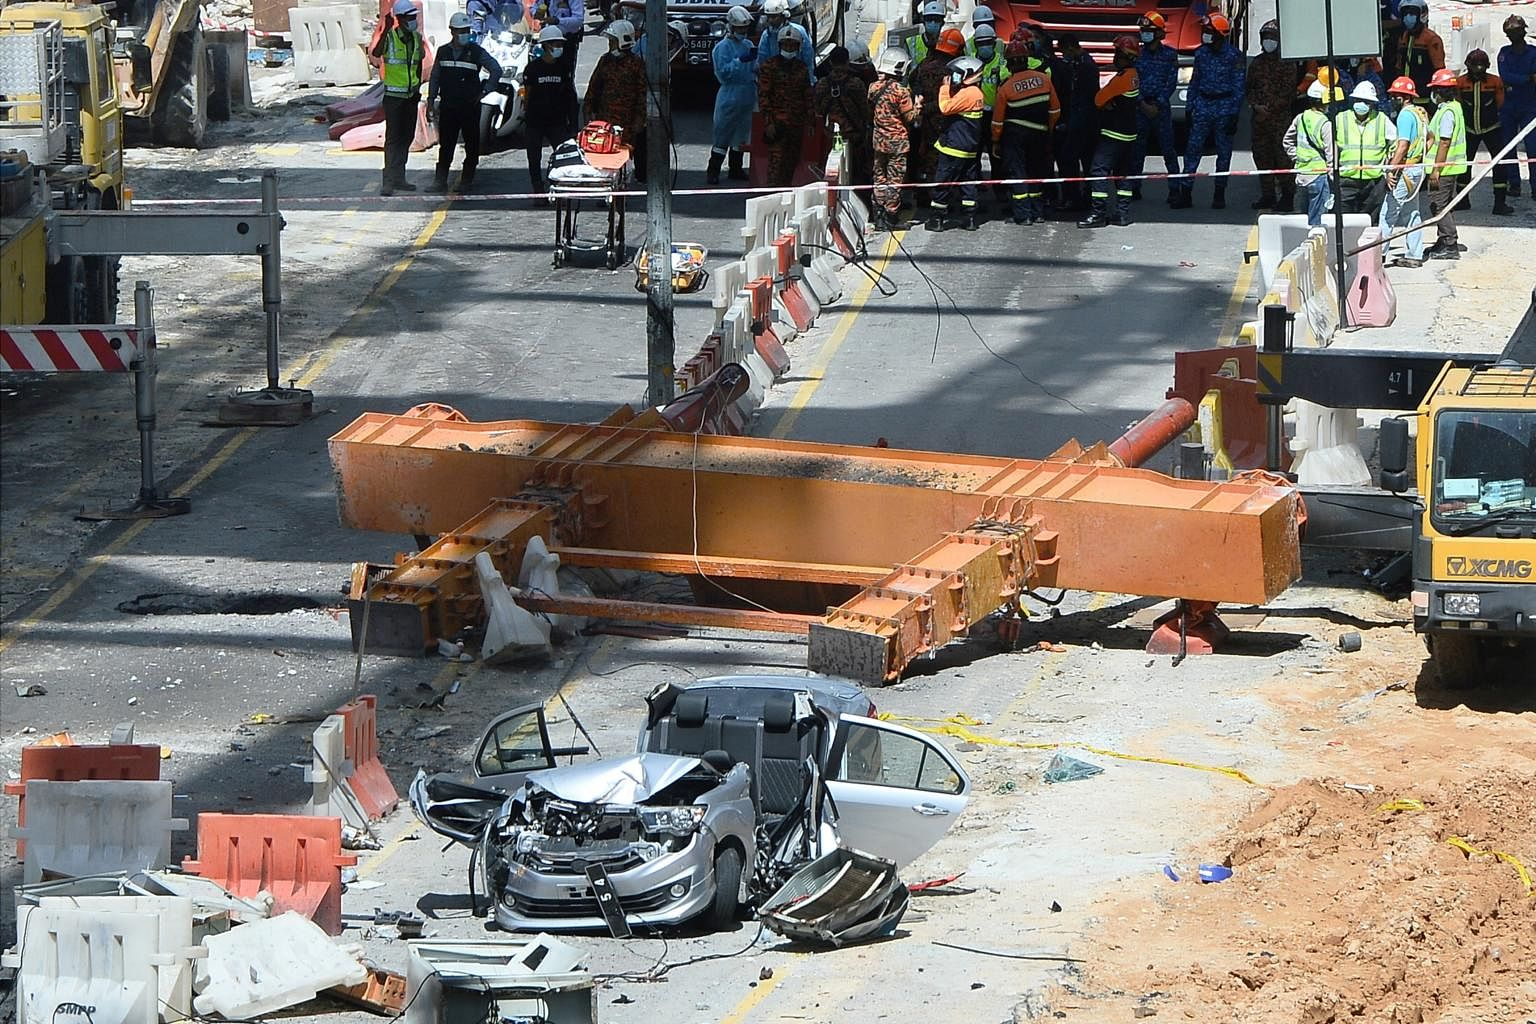 Malaysian authorities suspend Kuala Lumpur highway project after fatal  crane accident, SE Asia News & Top Stories - The Straits Times